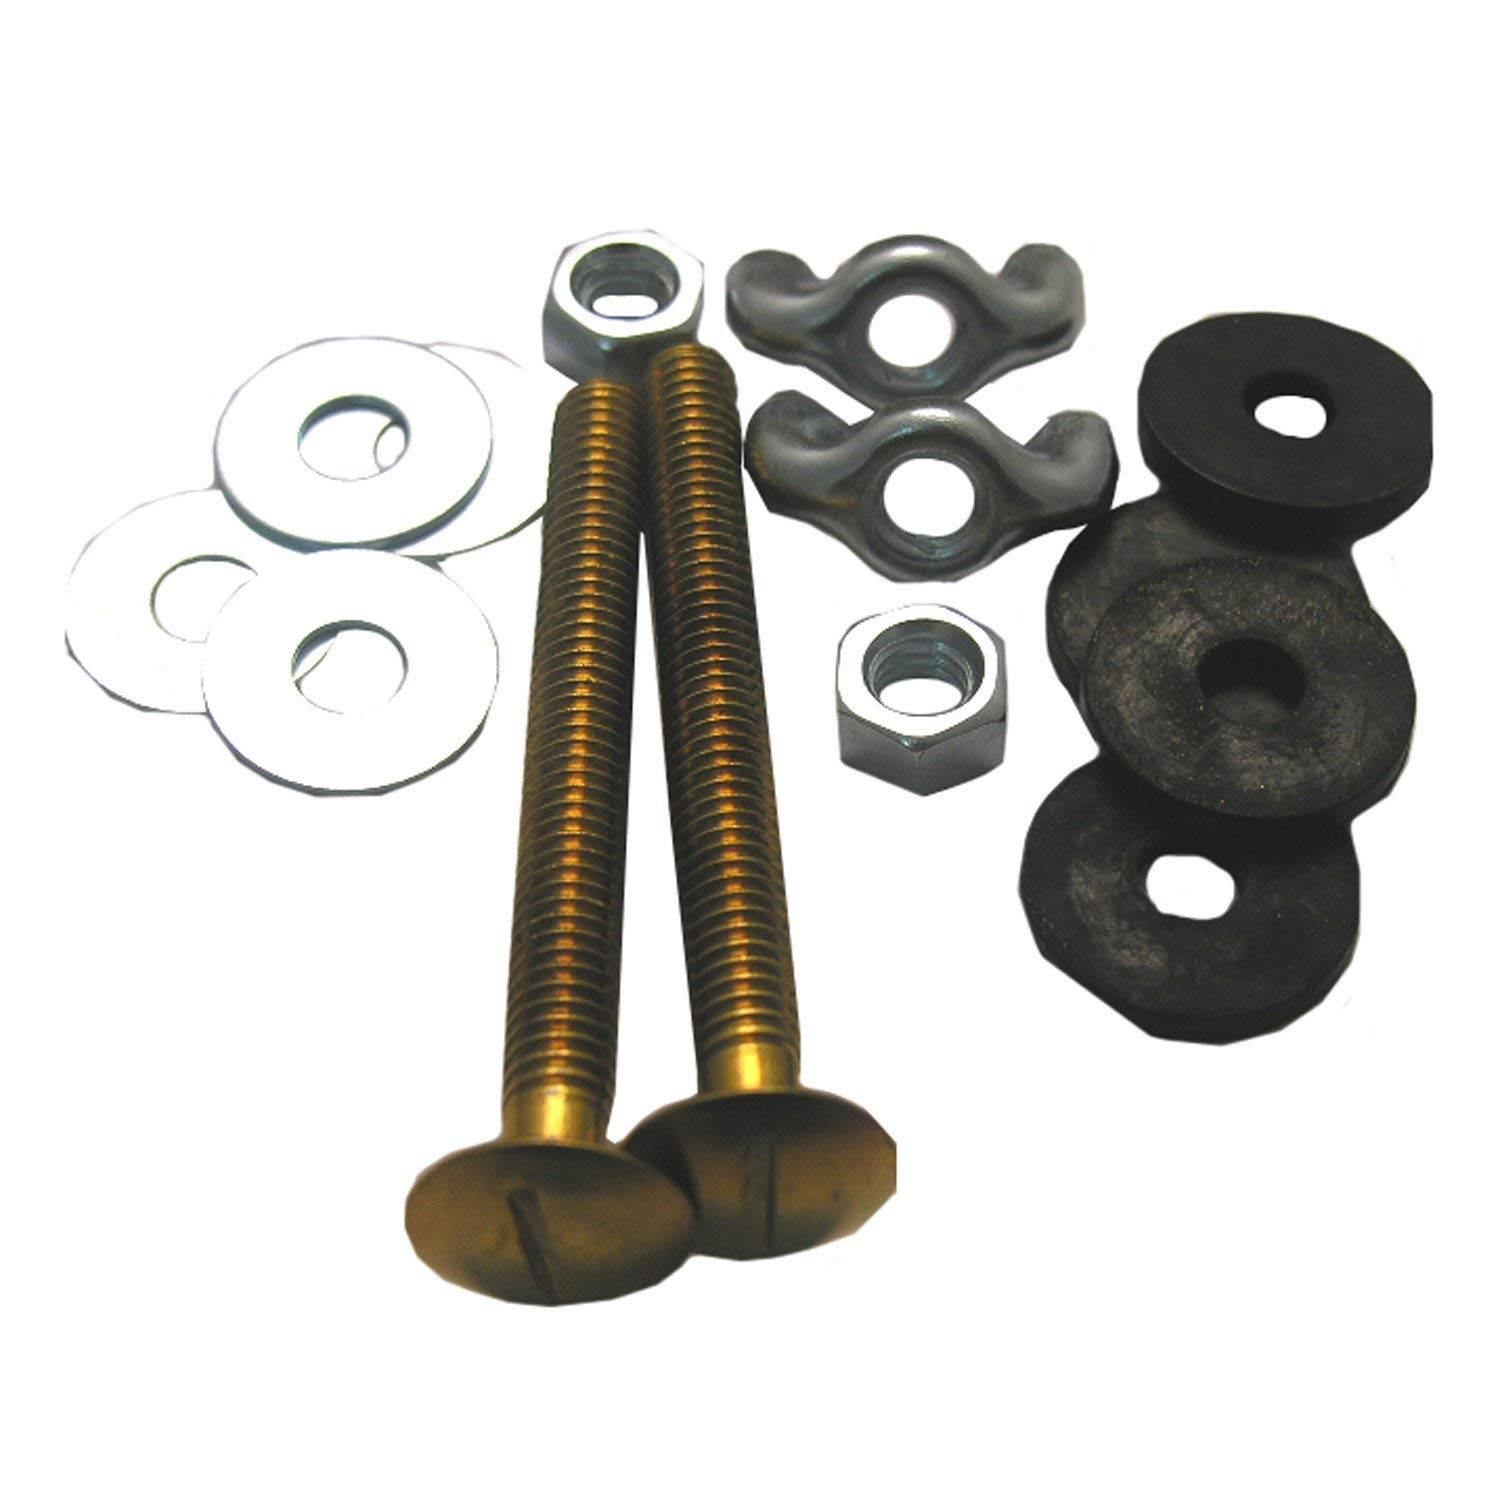 LASCO 04-3671 Toilet Tank to Bowl Solid Brass Bolts 5/16-Inch by 3-Inch with Rubber and Metal Round Washers and Wing and Hex Nuts